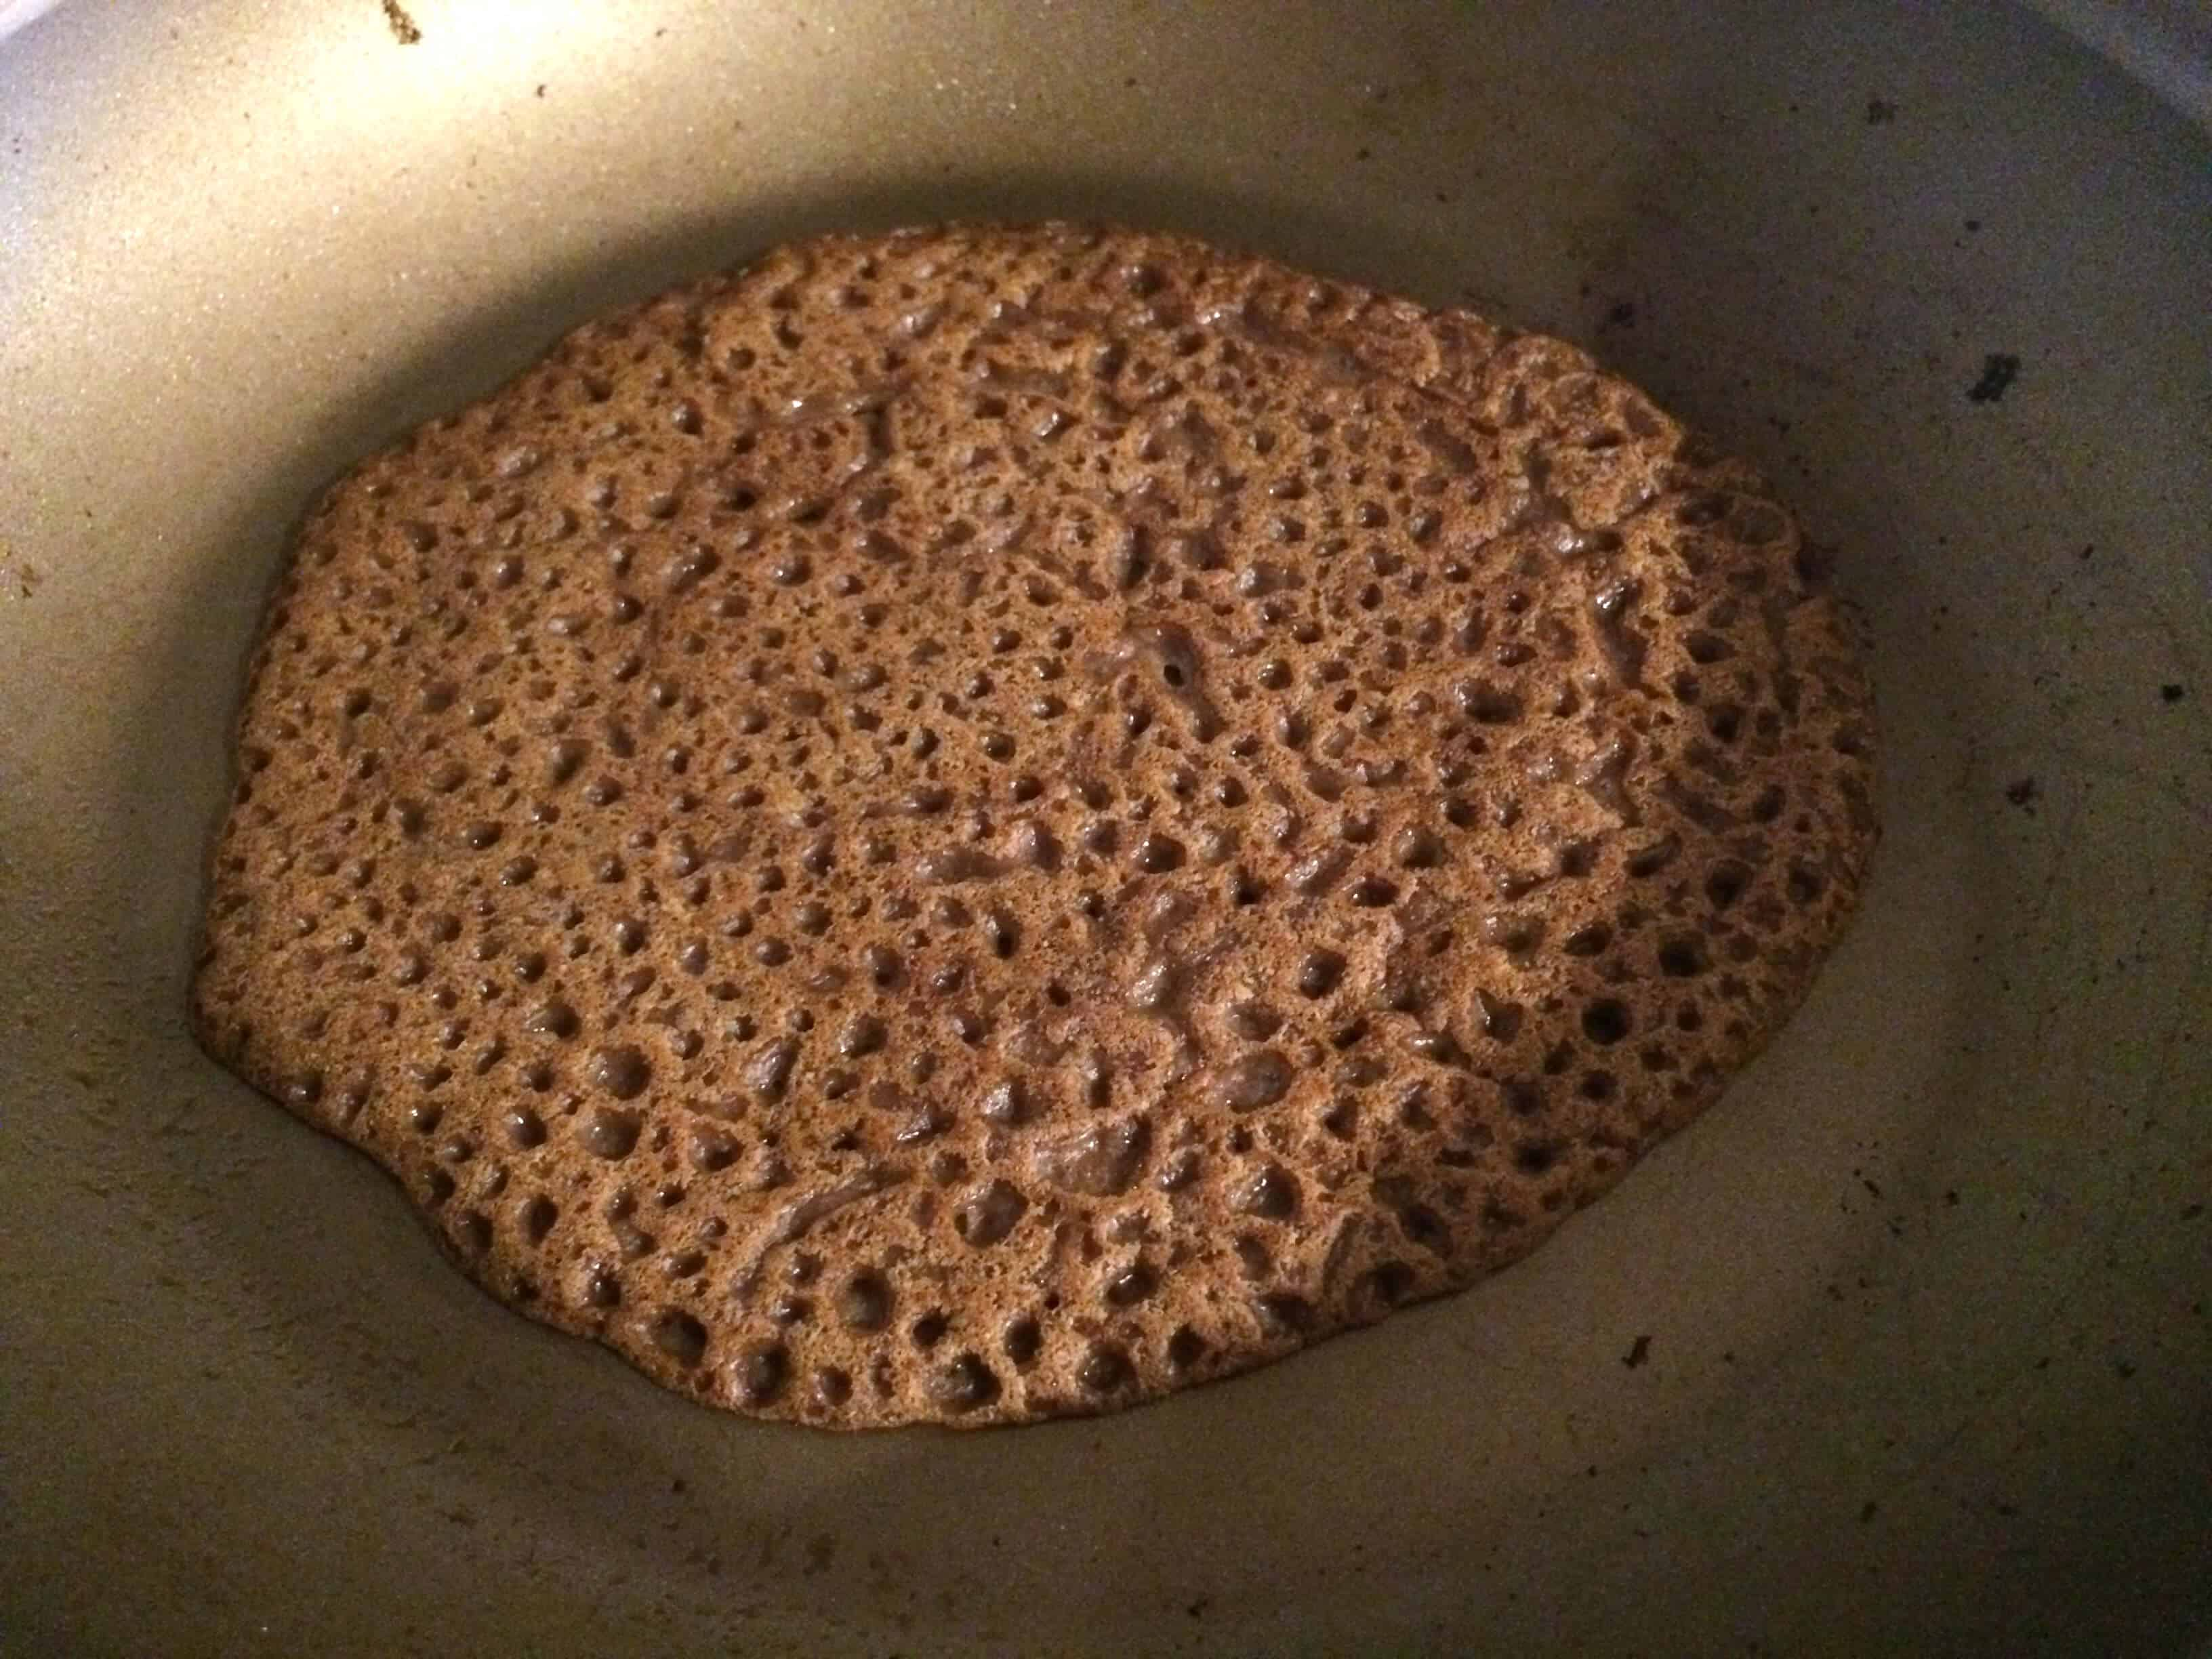 authentic injera recipe ethiopian flatbread sourdough fermented teff flour gluten free